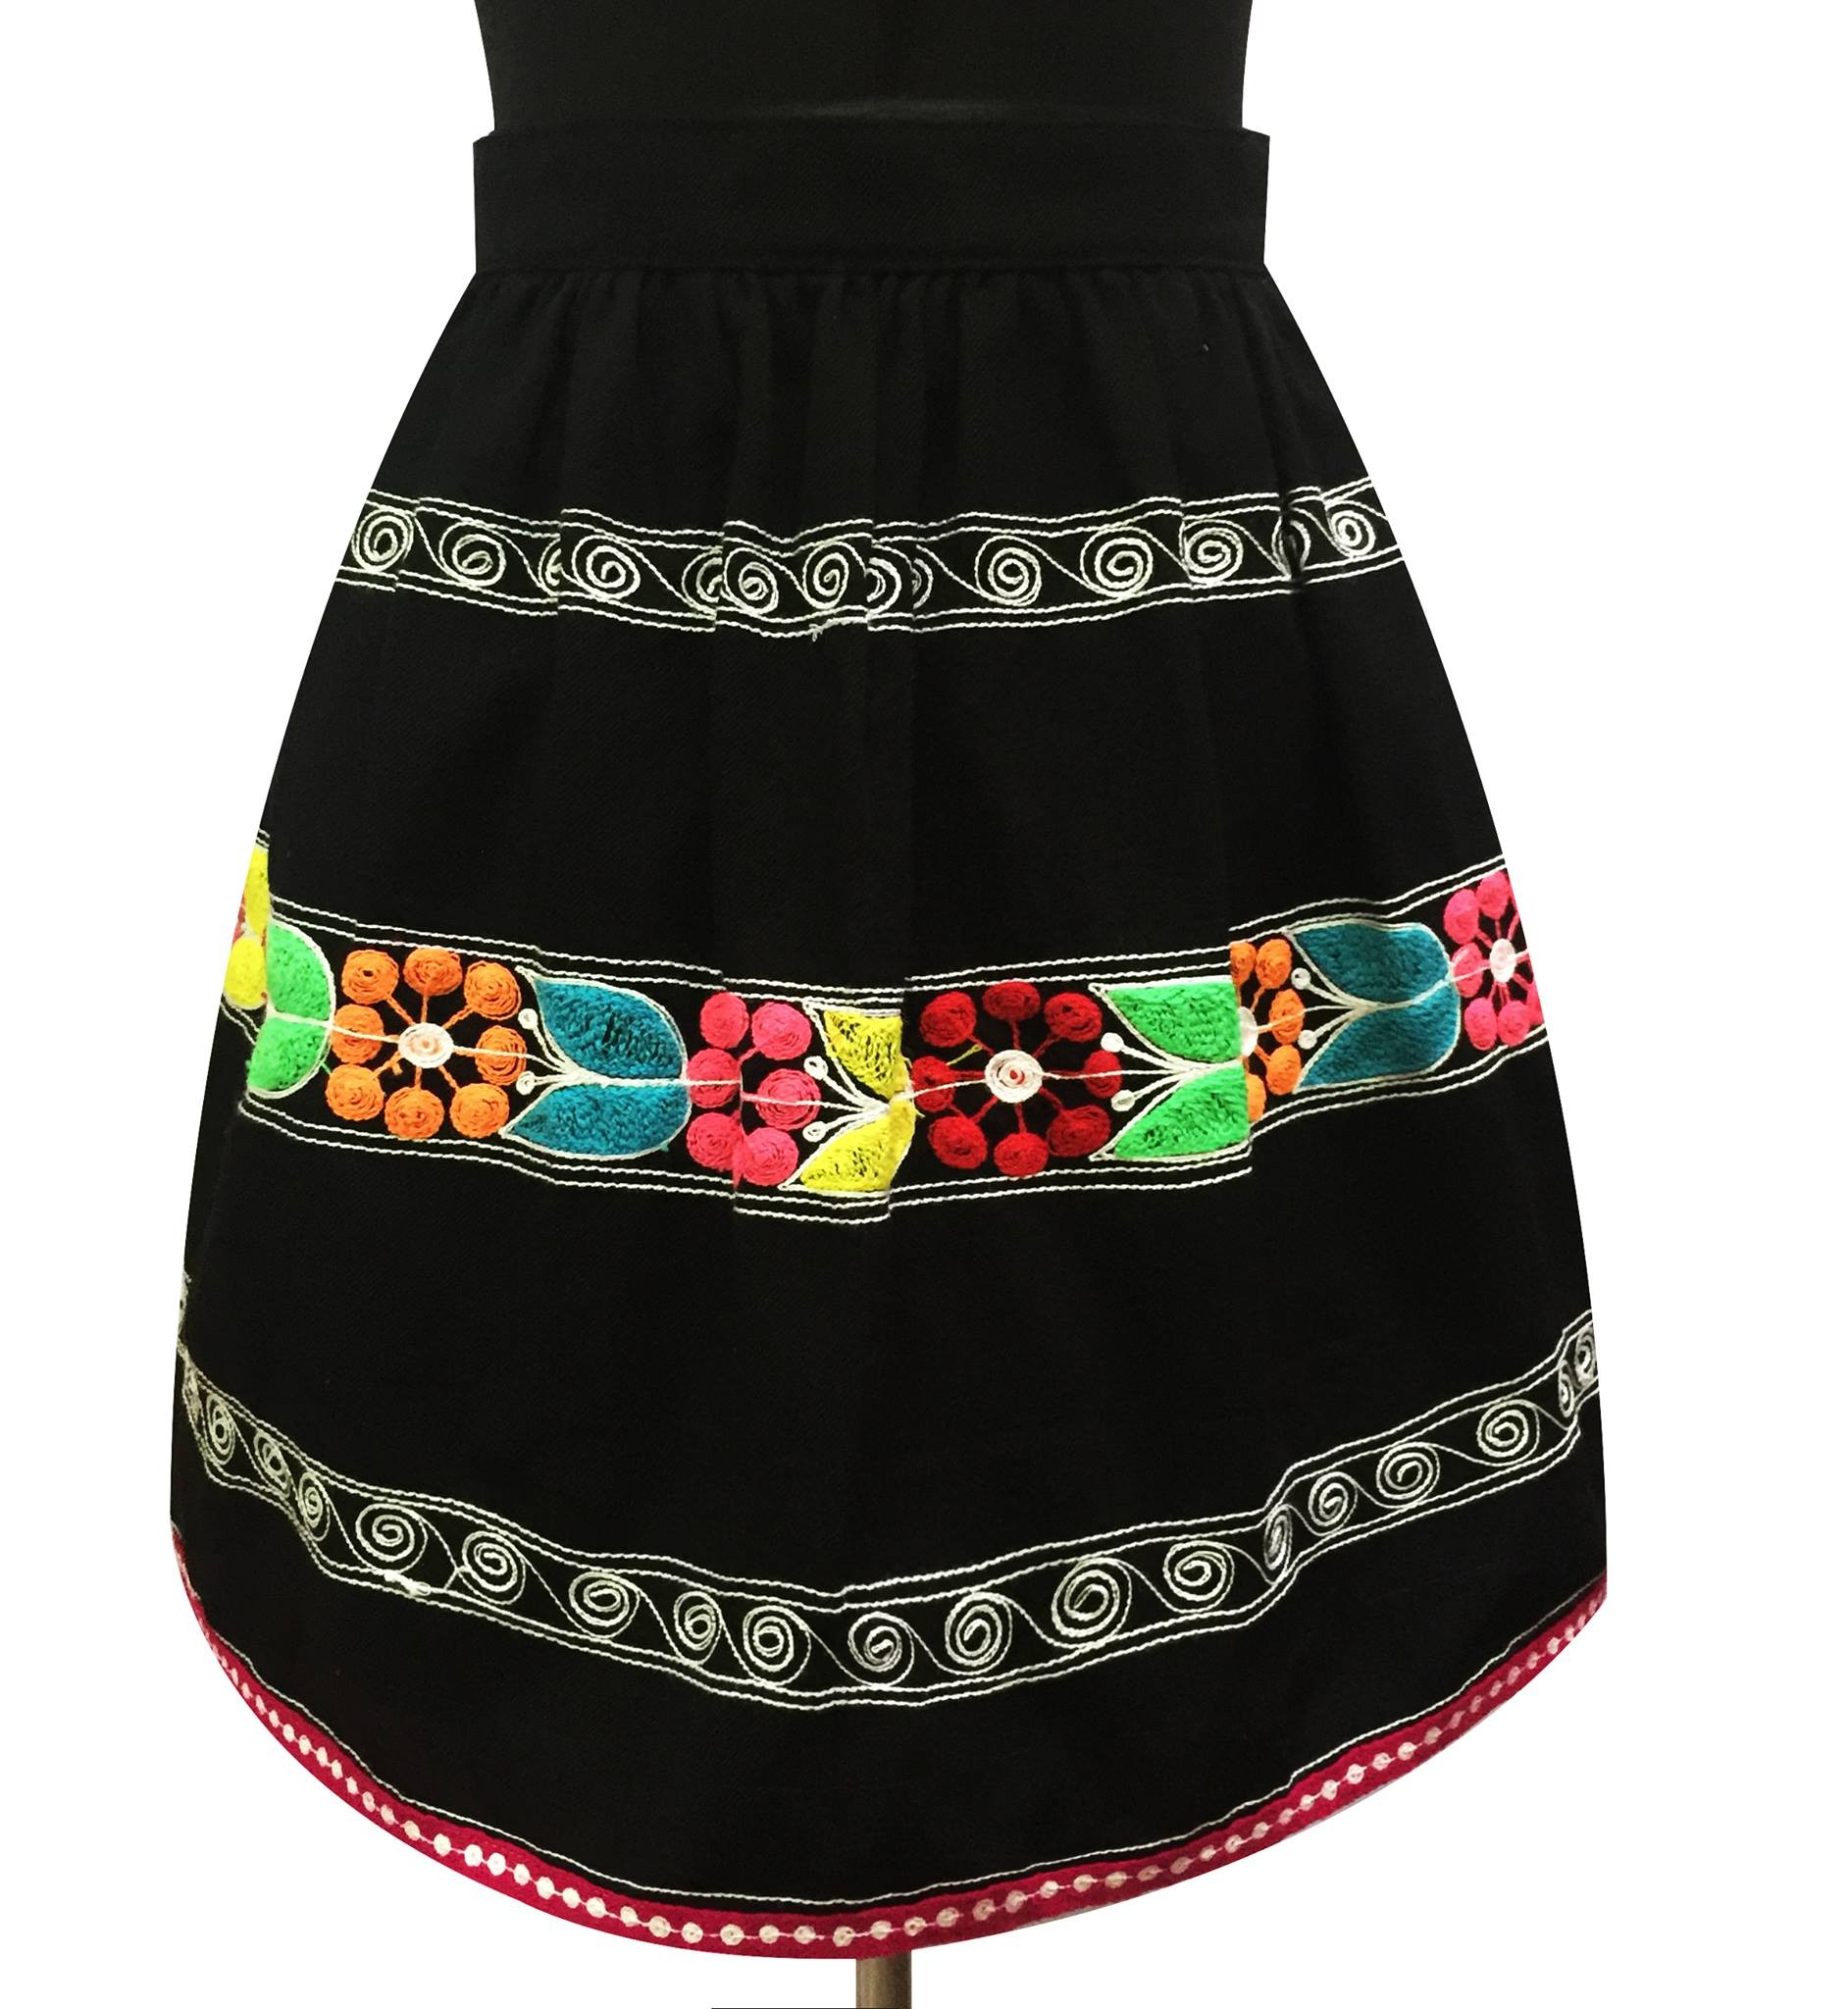 Acomayo andean skirt OUT OF STOCK